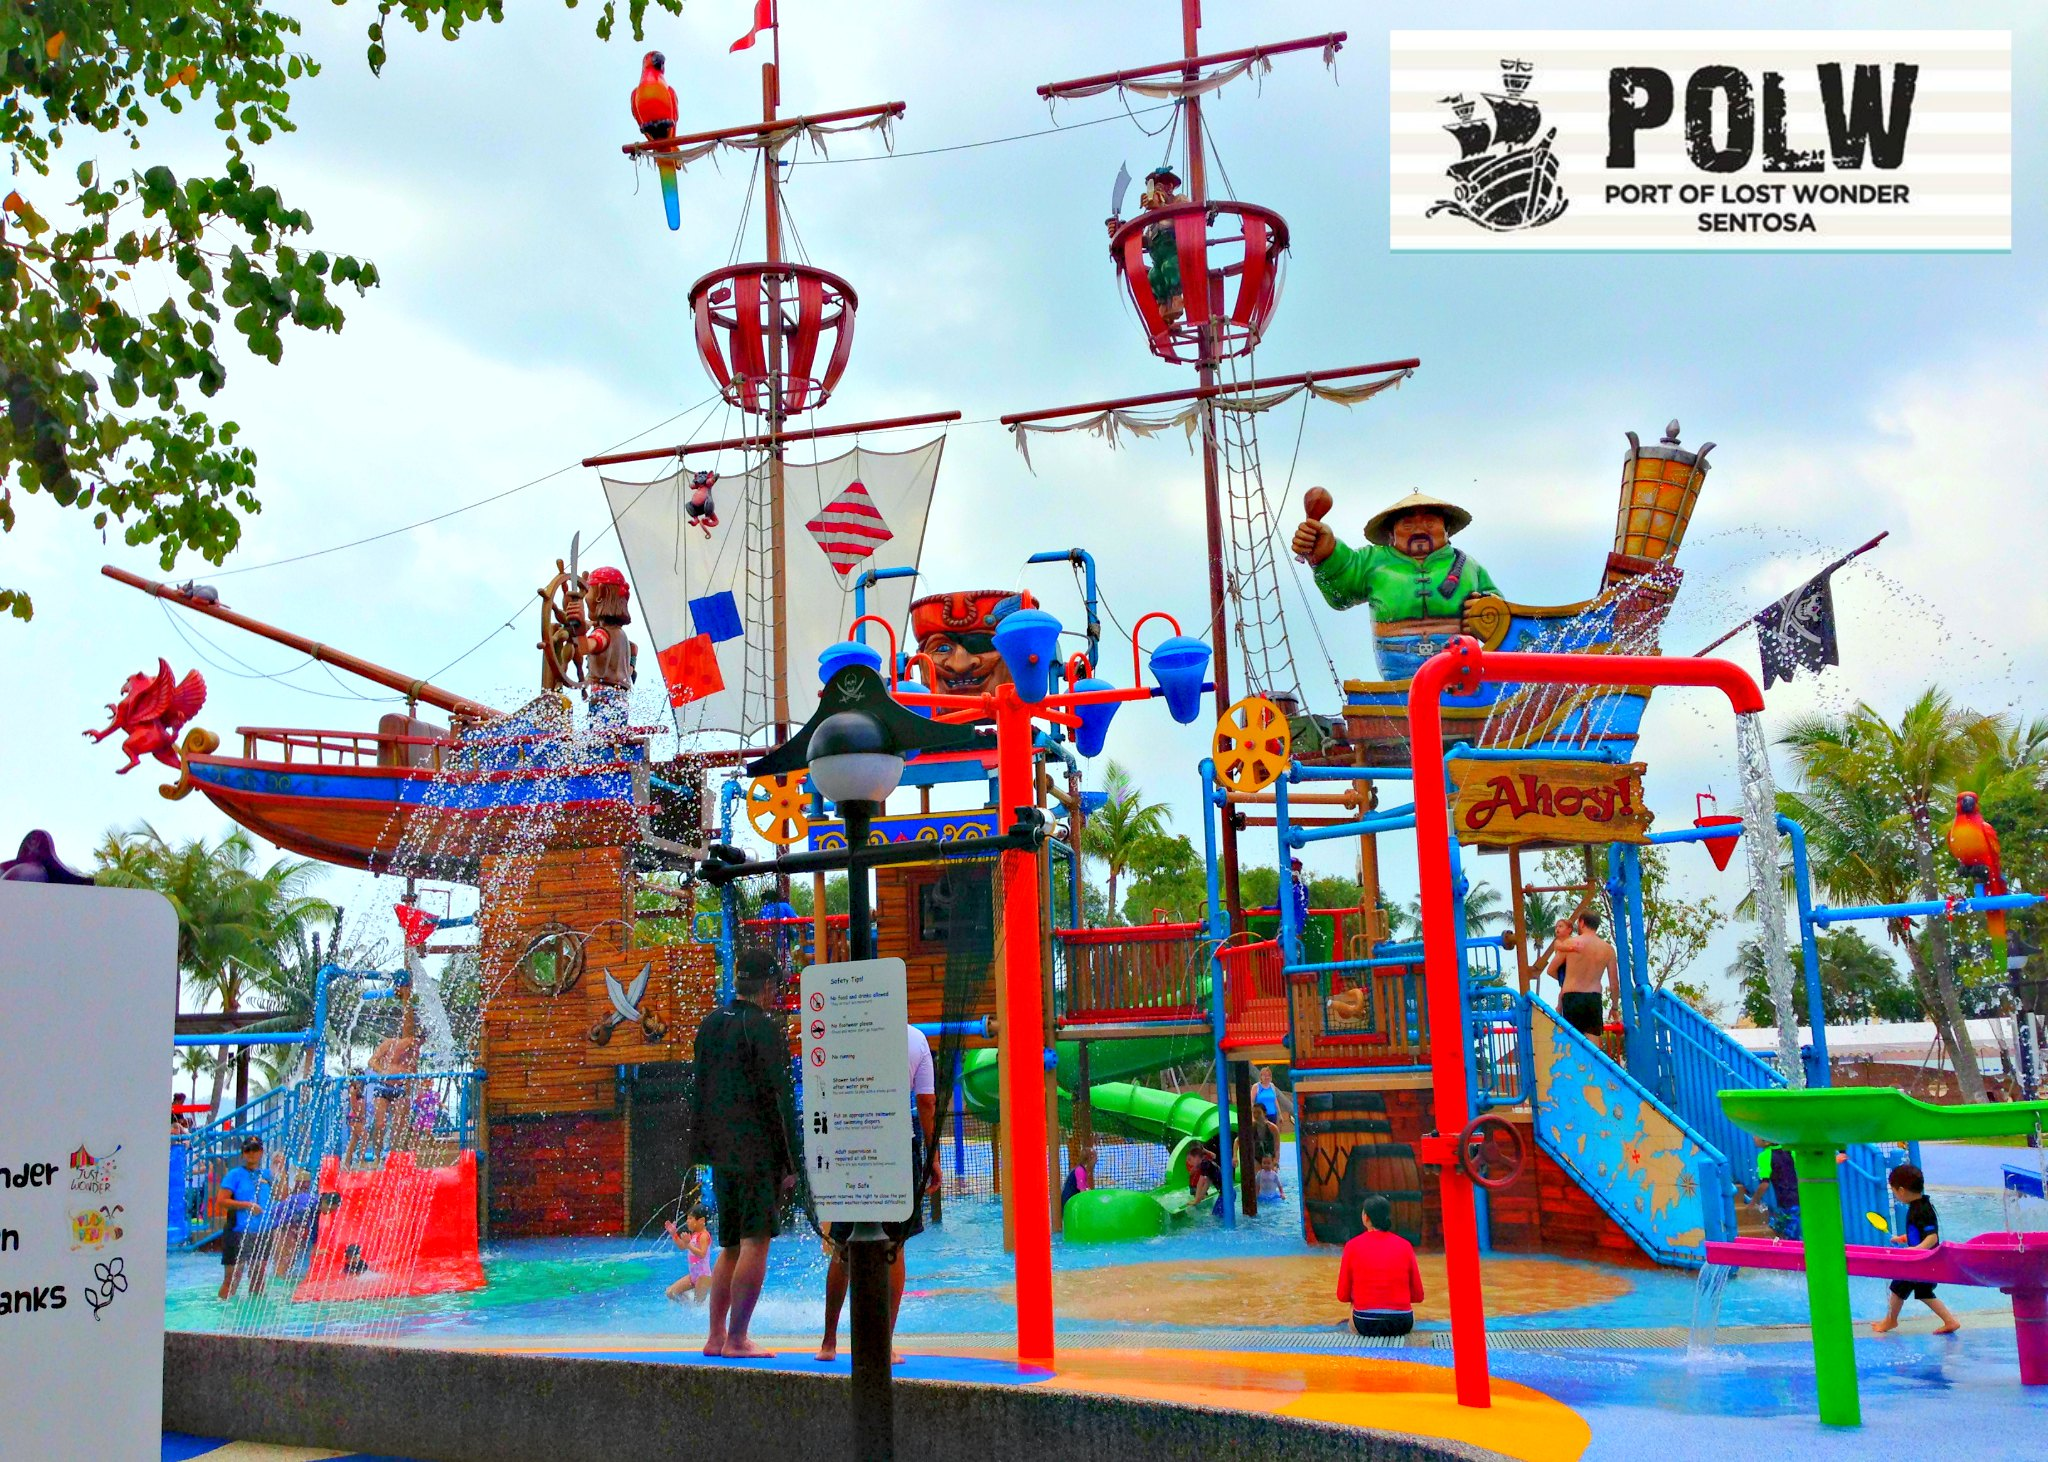 port of lost wonder in sentosa birthday party